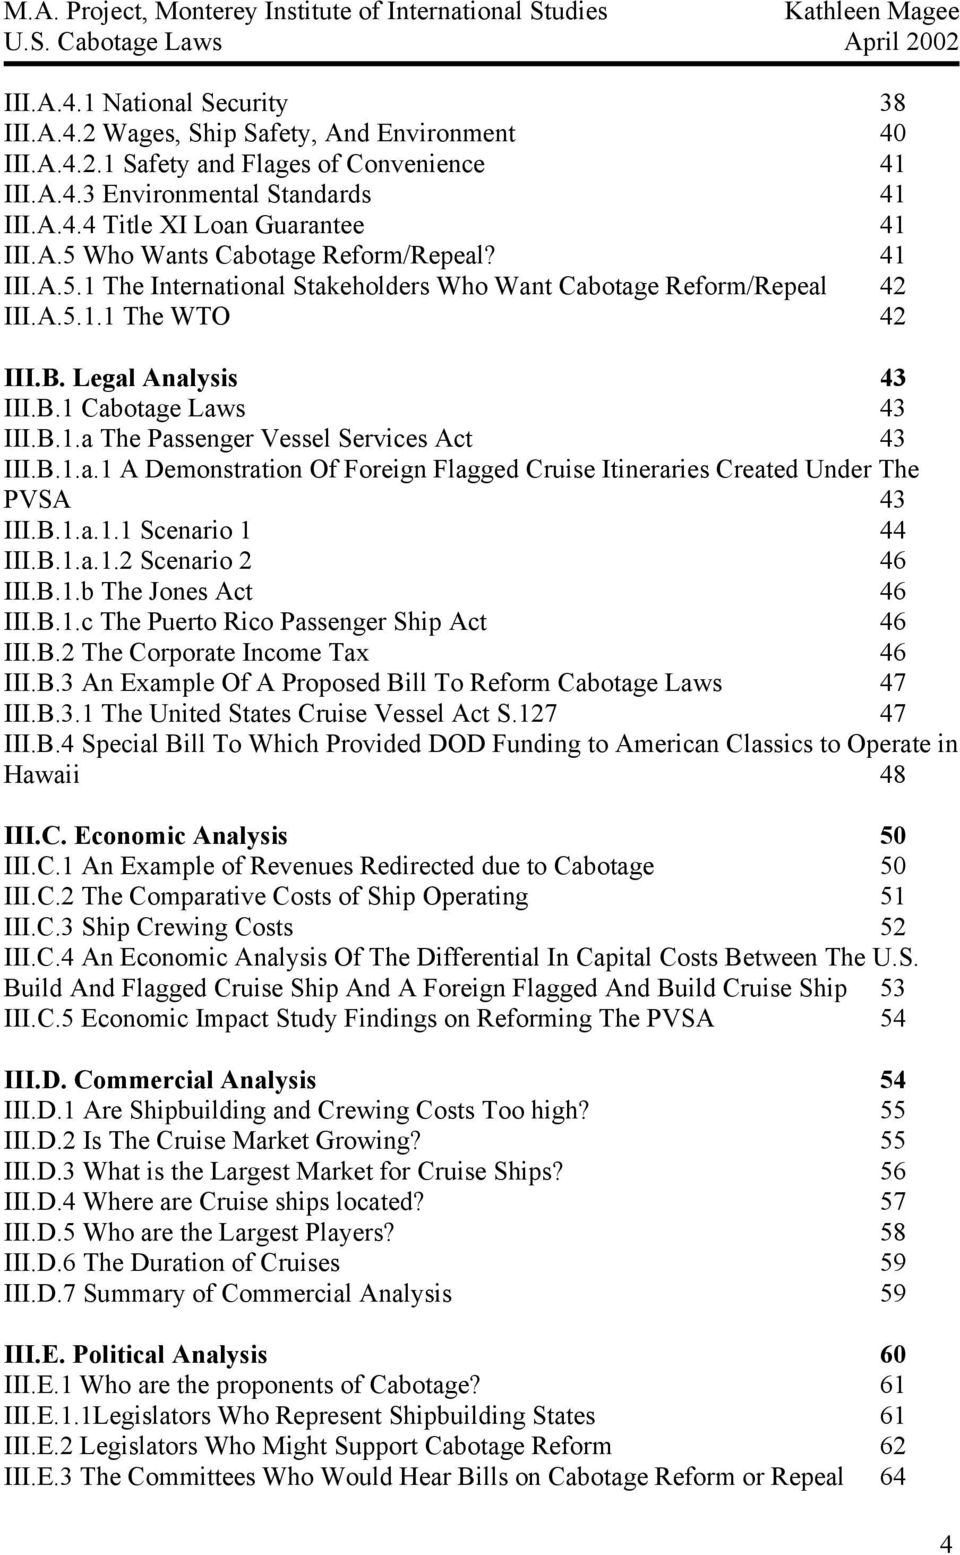 B.1.a.1 A Demonstration Of Foreign Flagged Cruise Itineraries Created Under The PVSA 43 III.B.1.a.1.1 Scenario 1 44 III.B.1.a.1.2 Scenario 2 46 III.B.1.b The Jones Act 46 III.B.1.c The Puerto Rico Passenger Ship Act 46 III.